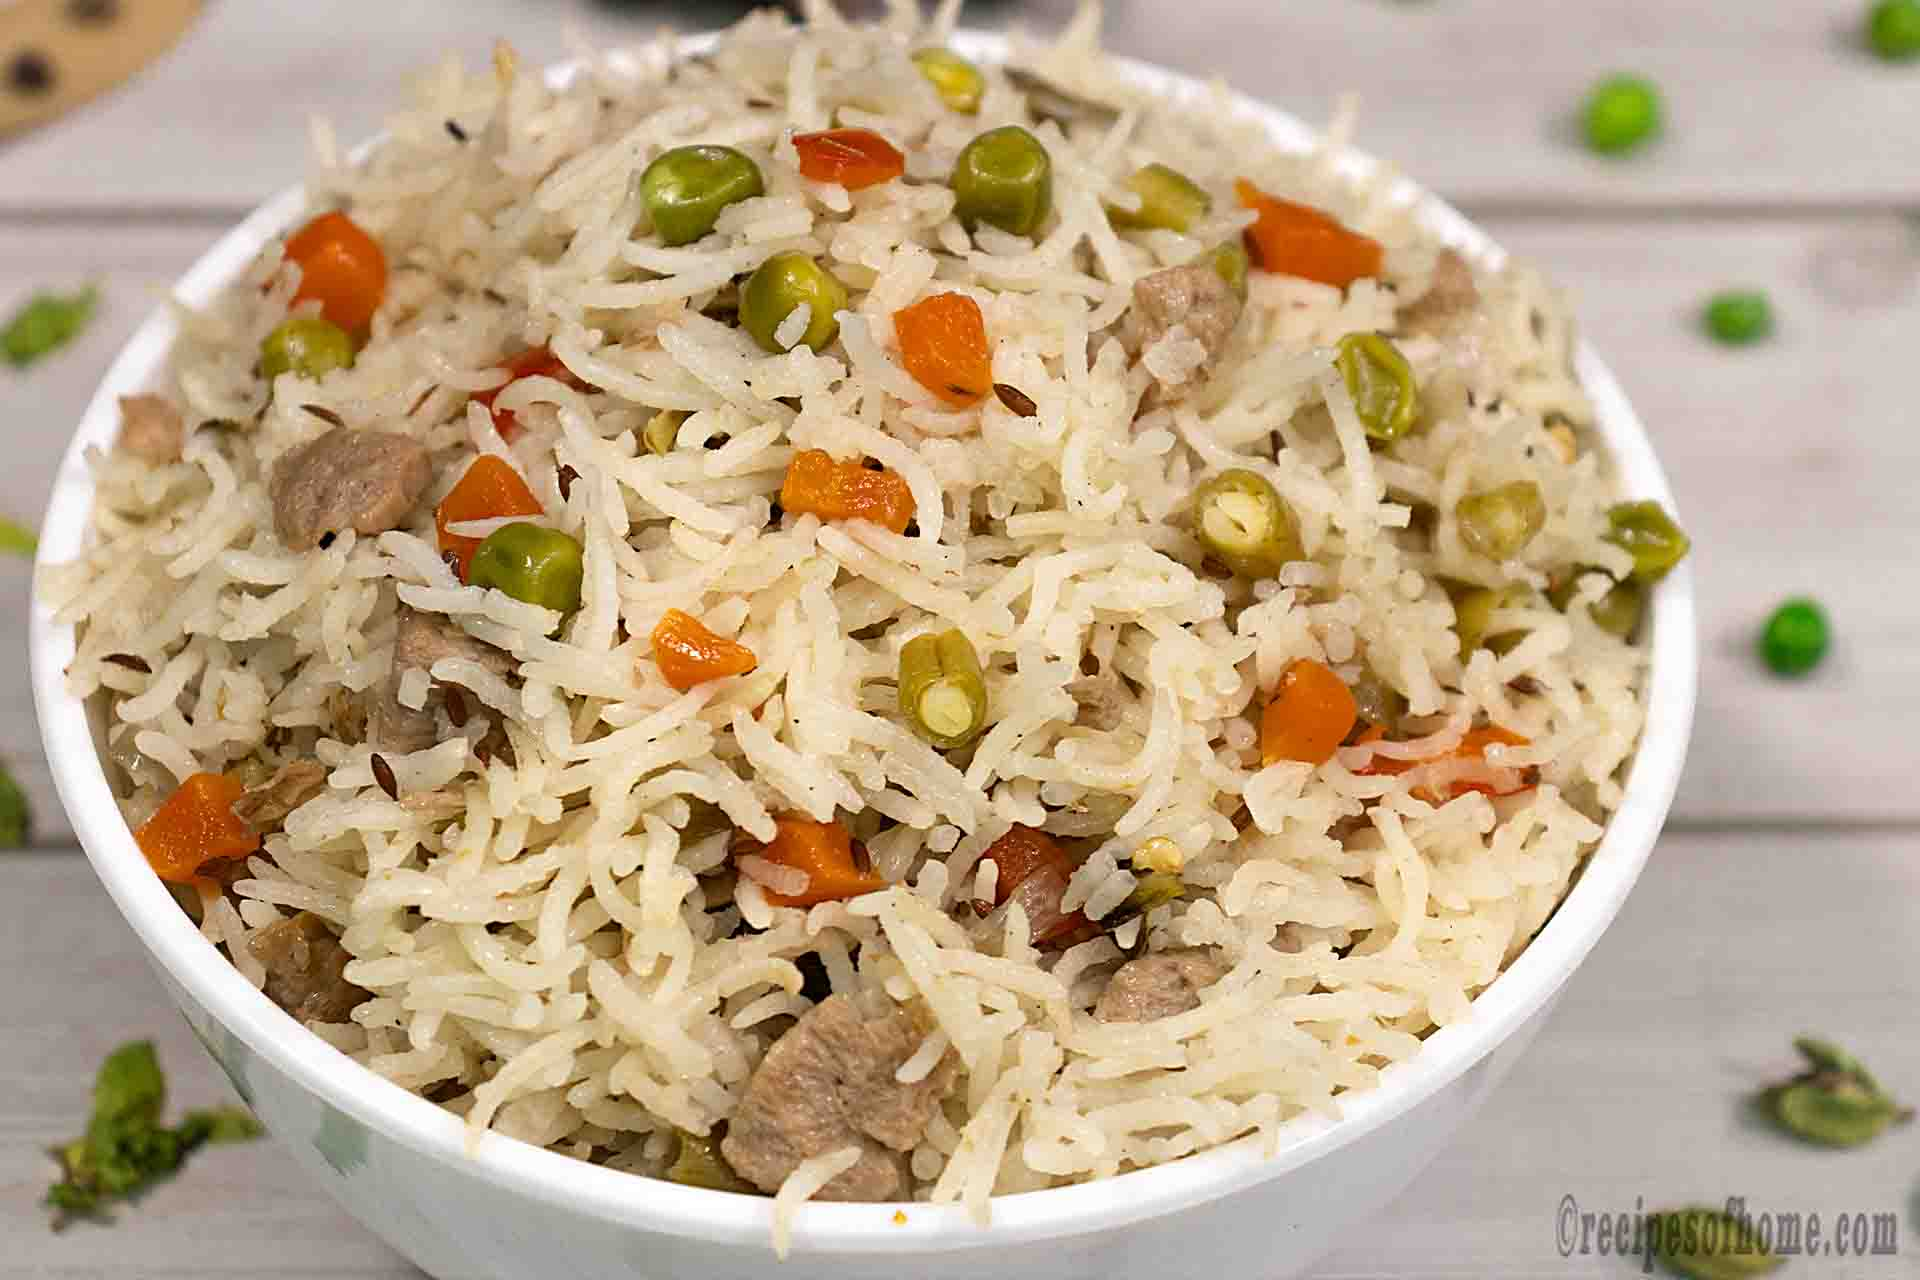 vegetable-pulao-in-white-bowl